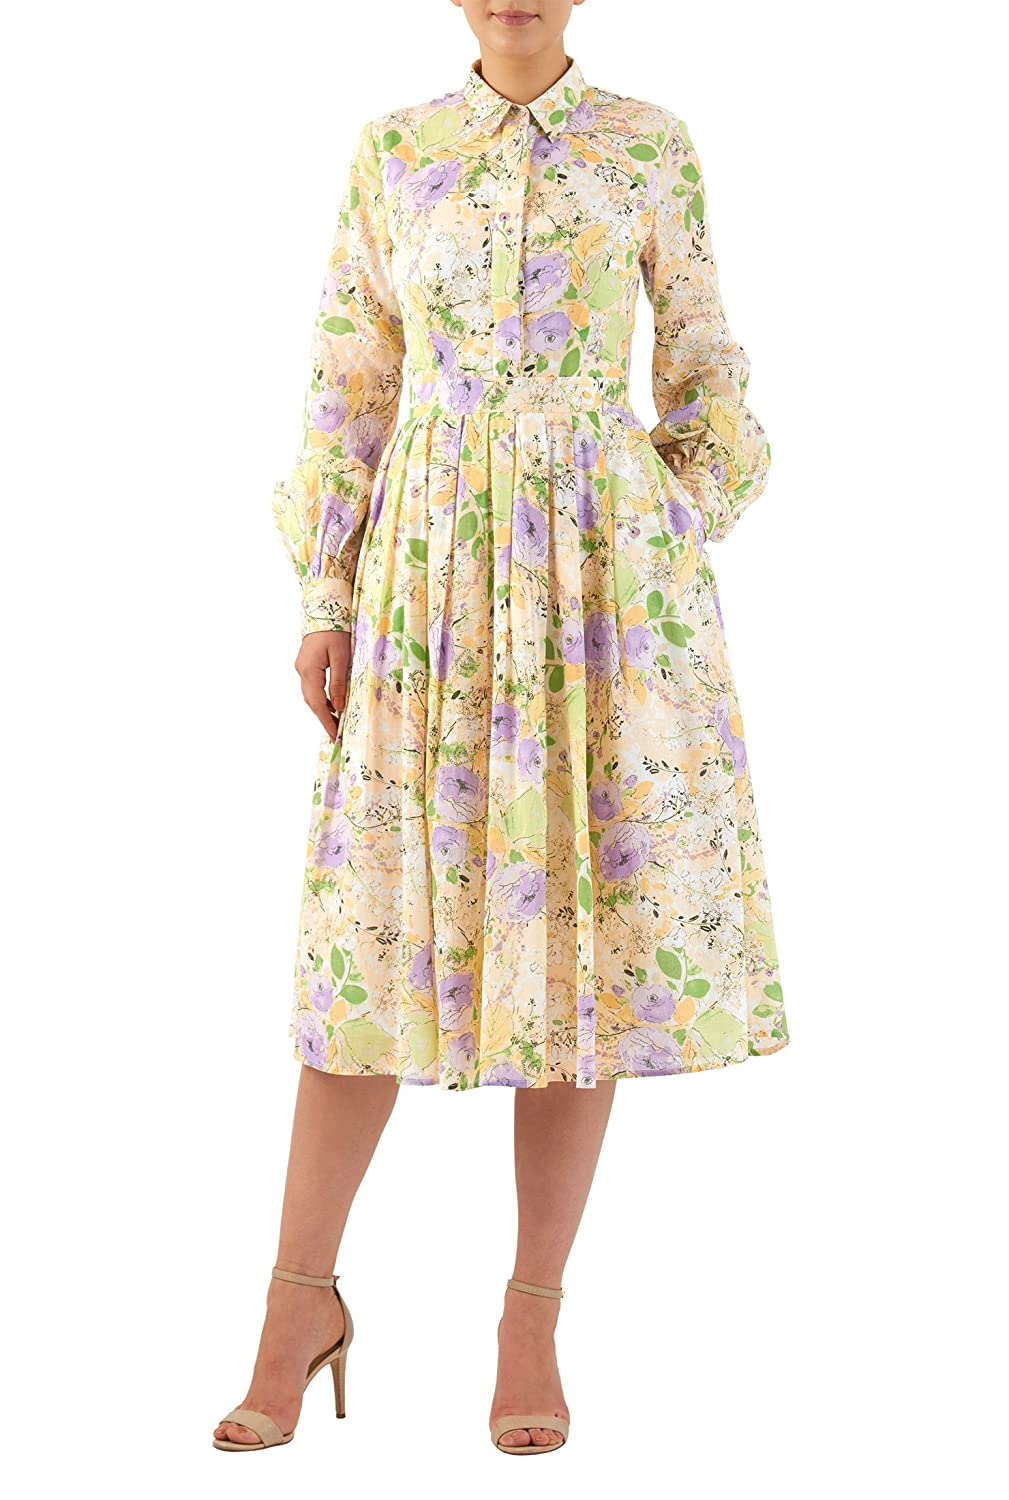 1960s – 70s Dresses- Retro Inspired Fashion eShakti Womens Statement sleeve floral print cotton shirtdress $62.95 AT vintagedancer.com